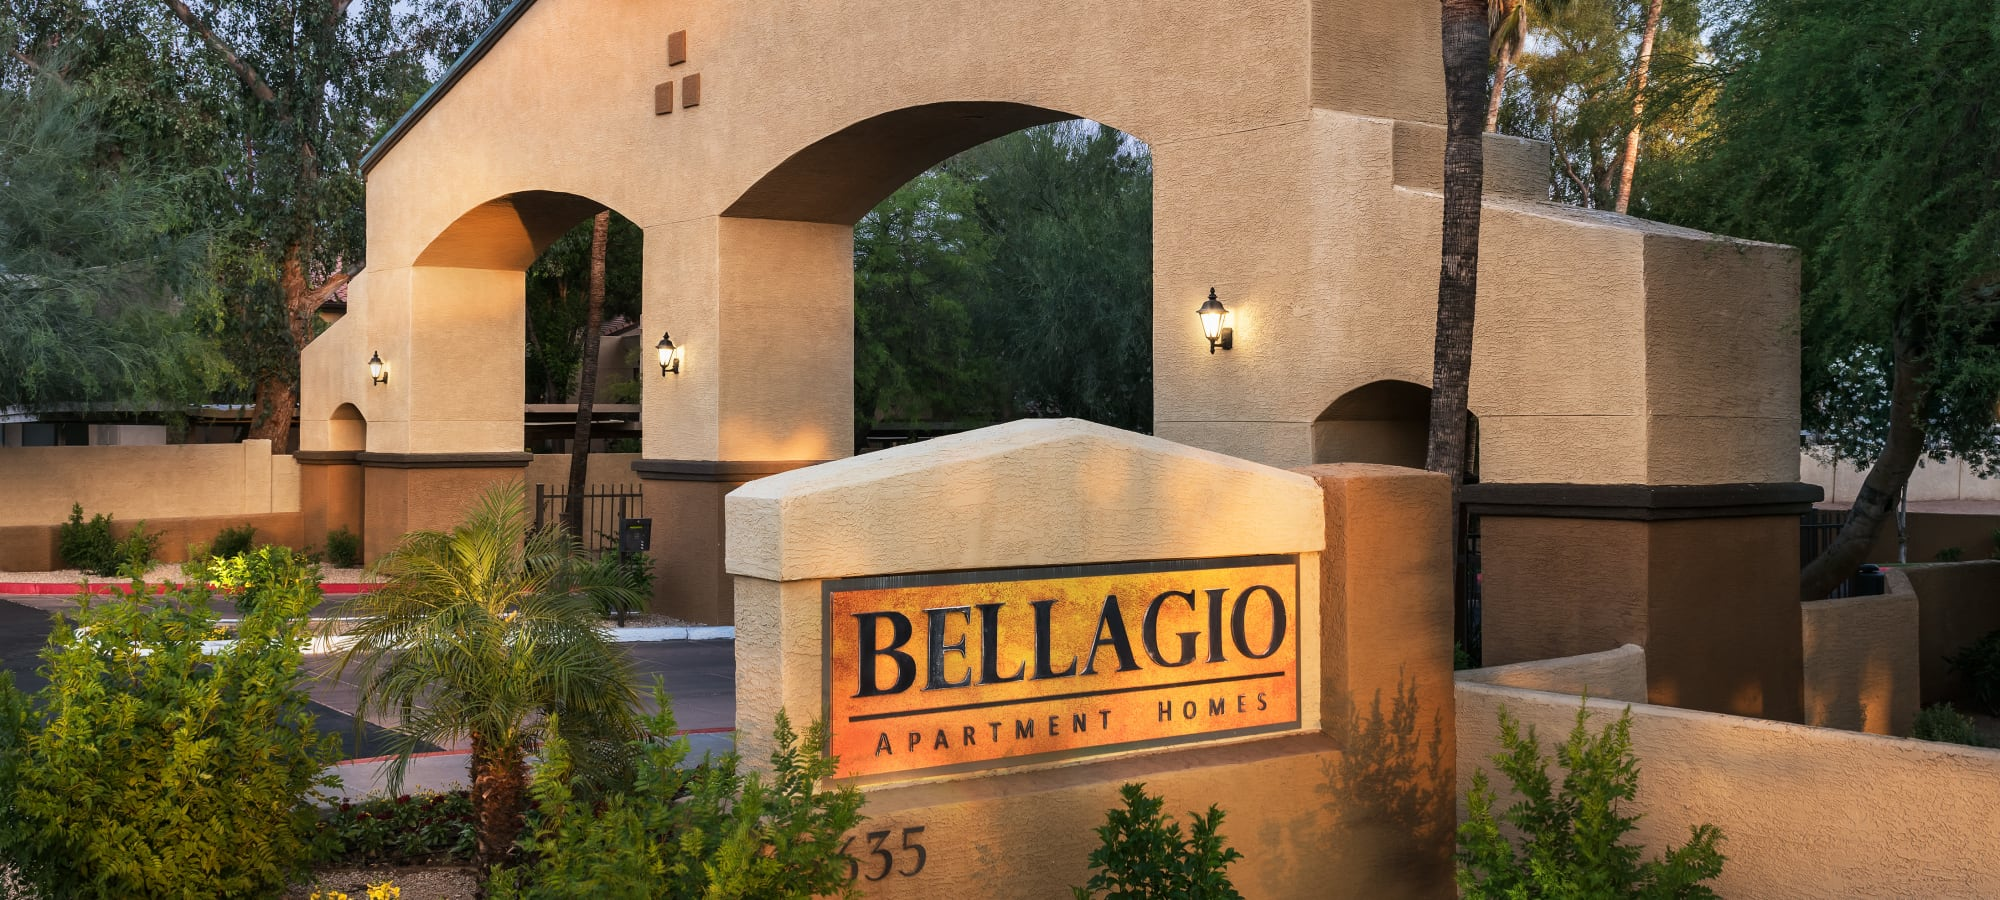 Entrance sign at Bellagio in Scottsdale, Arizona